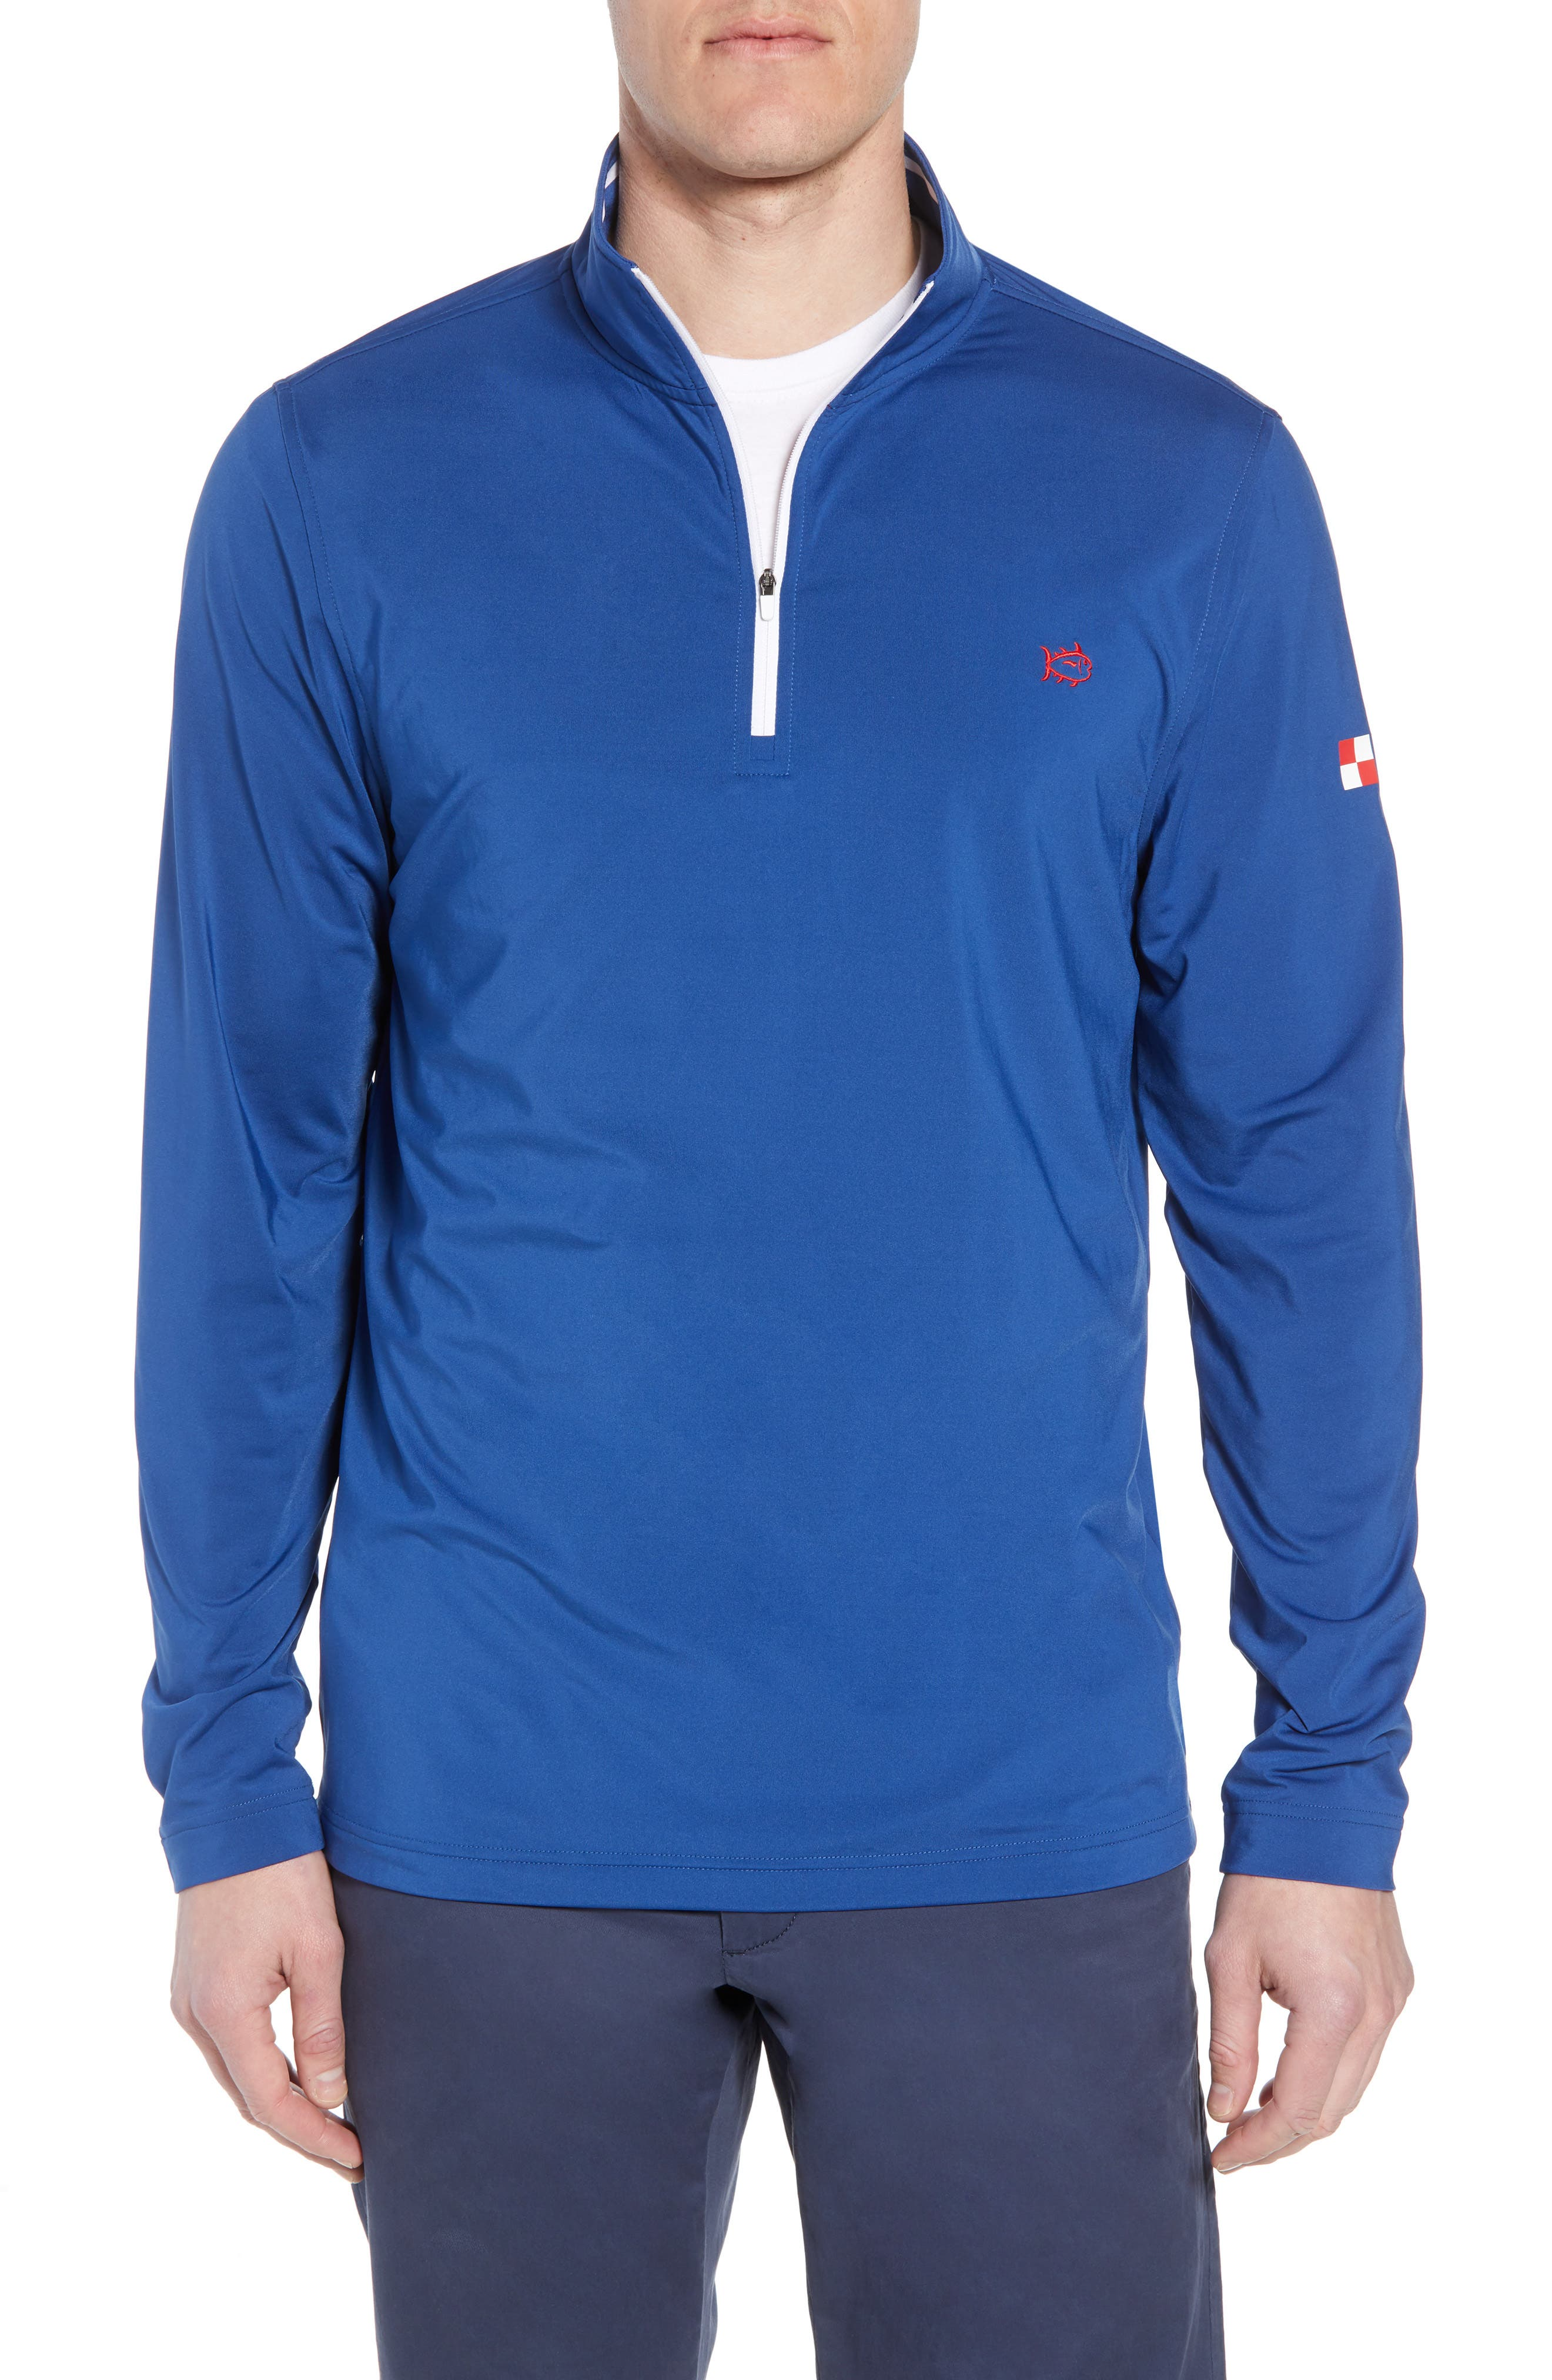 USA Performance Quarter-Zip Pullover,                         Main,                         color, 400